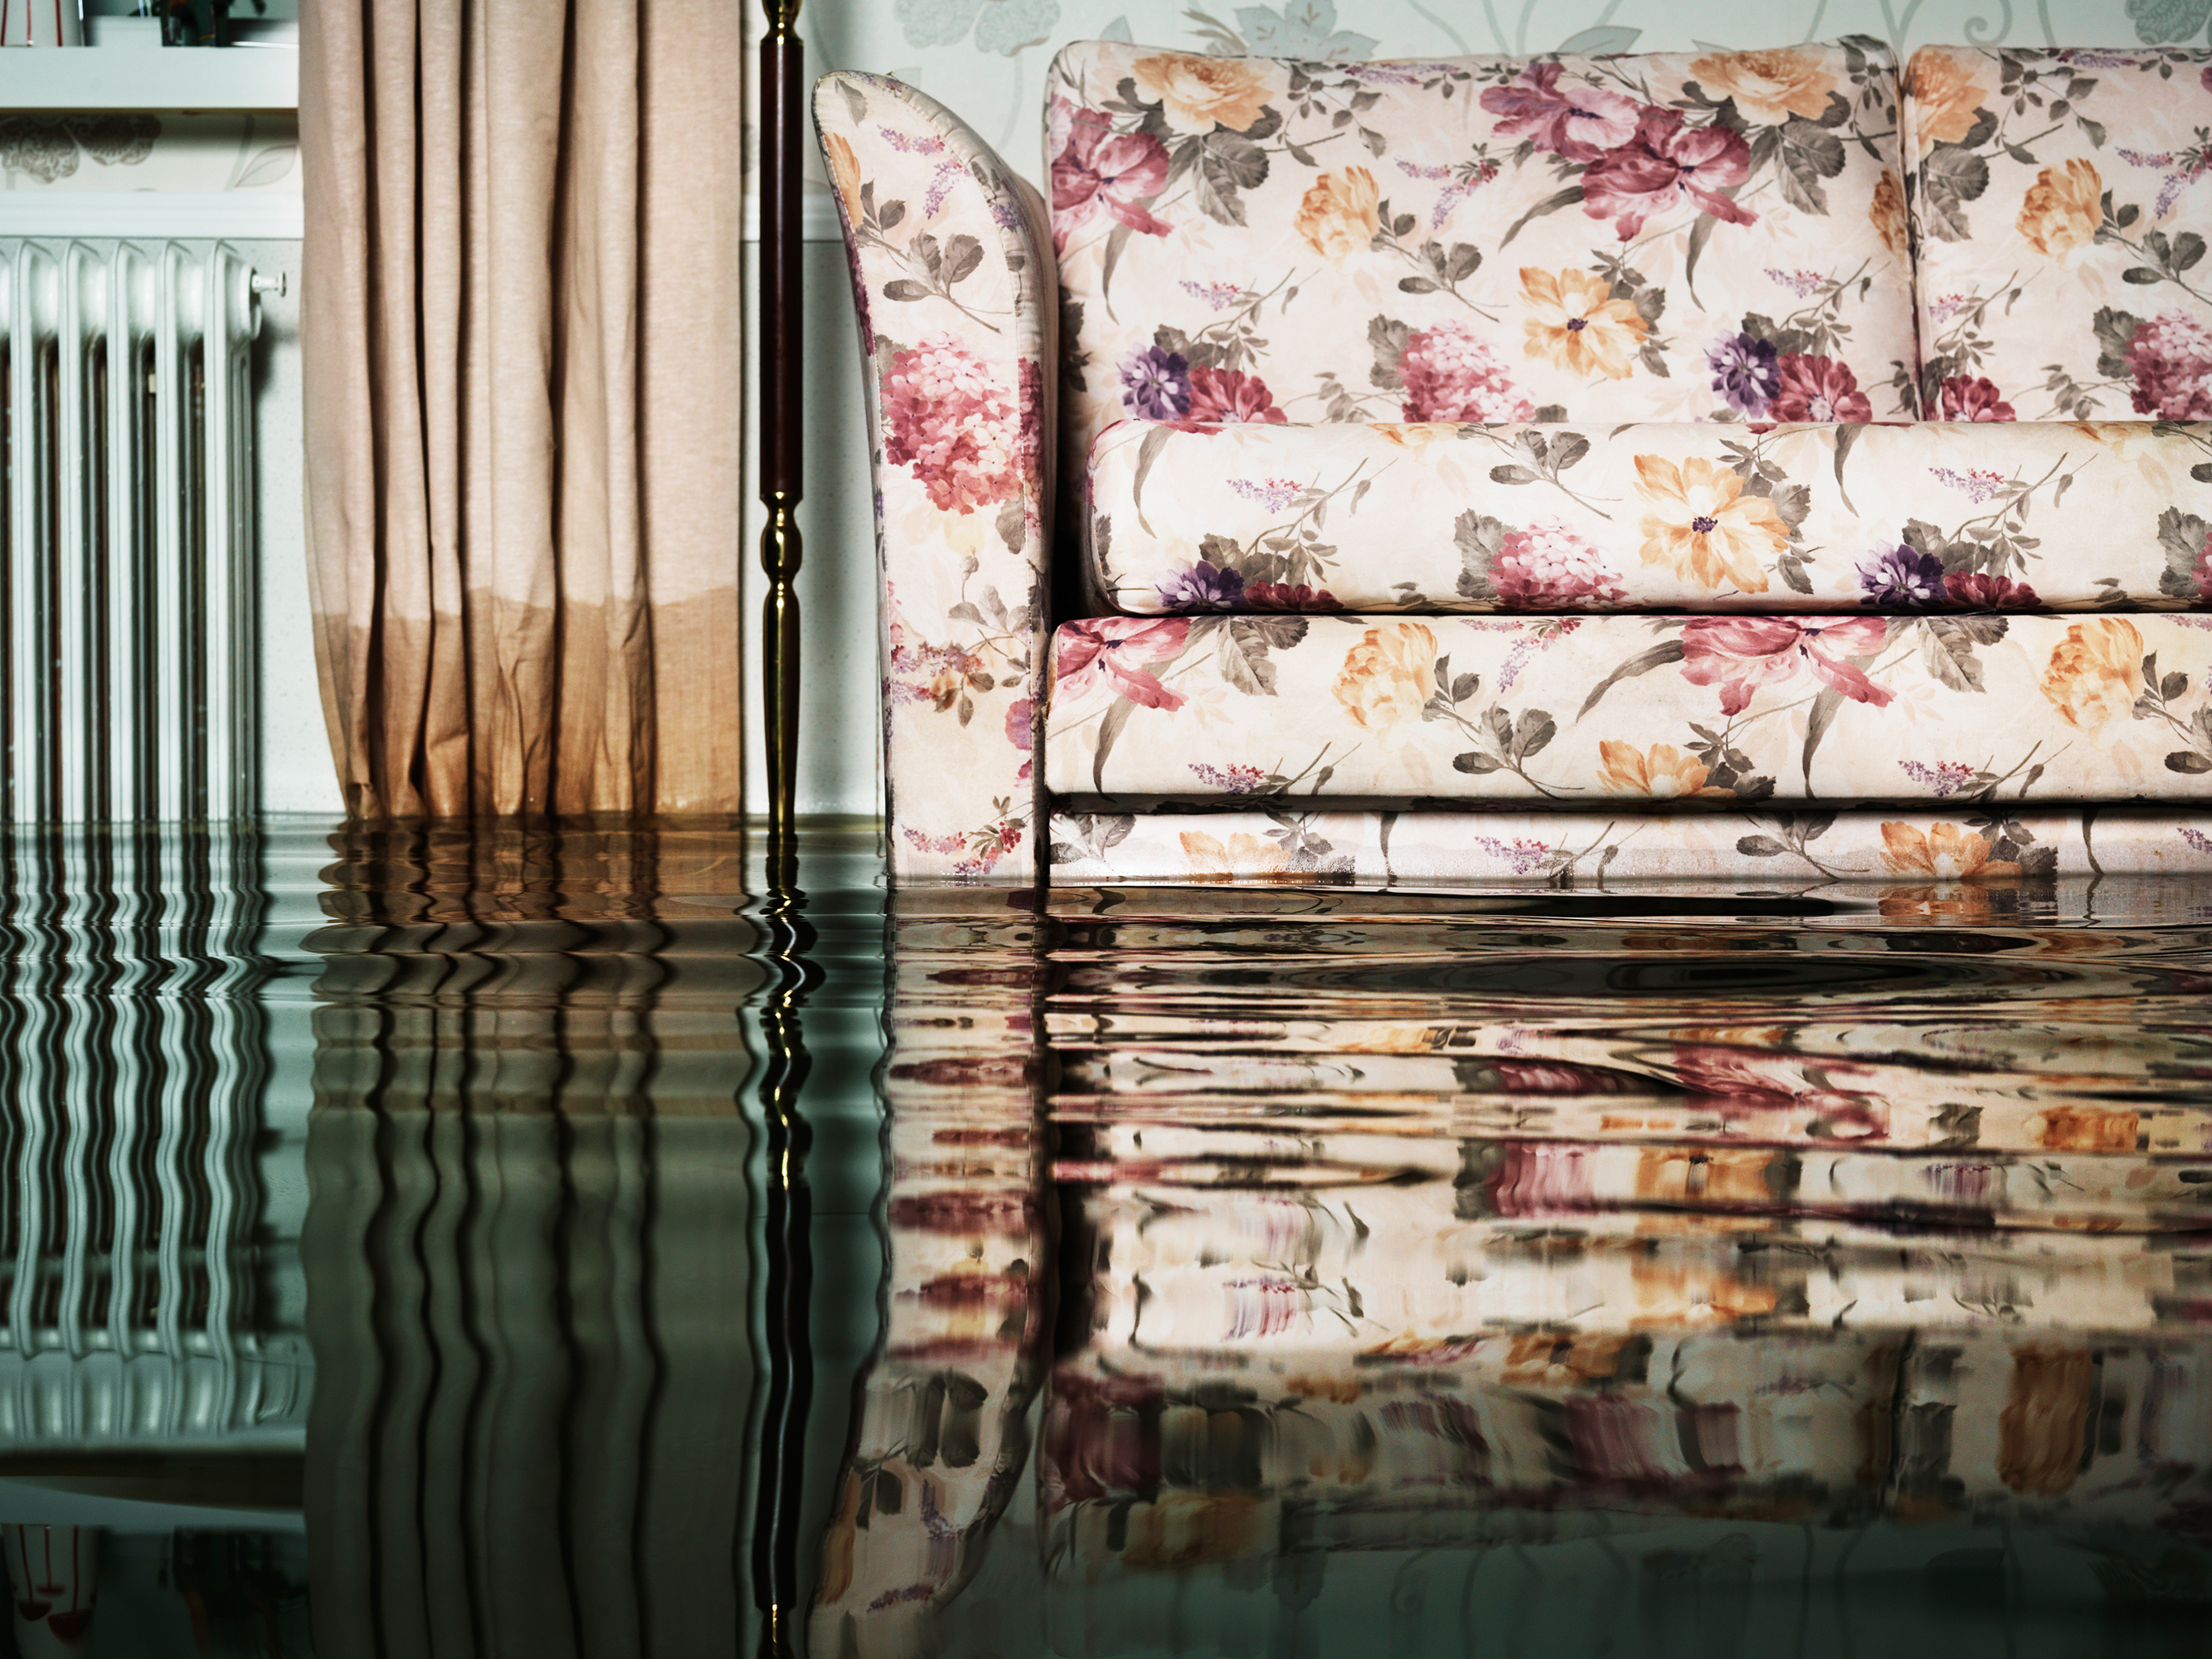 living room in flooded home with water